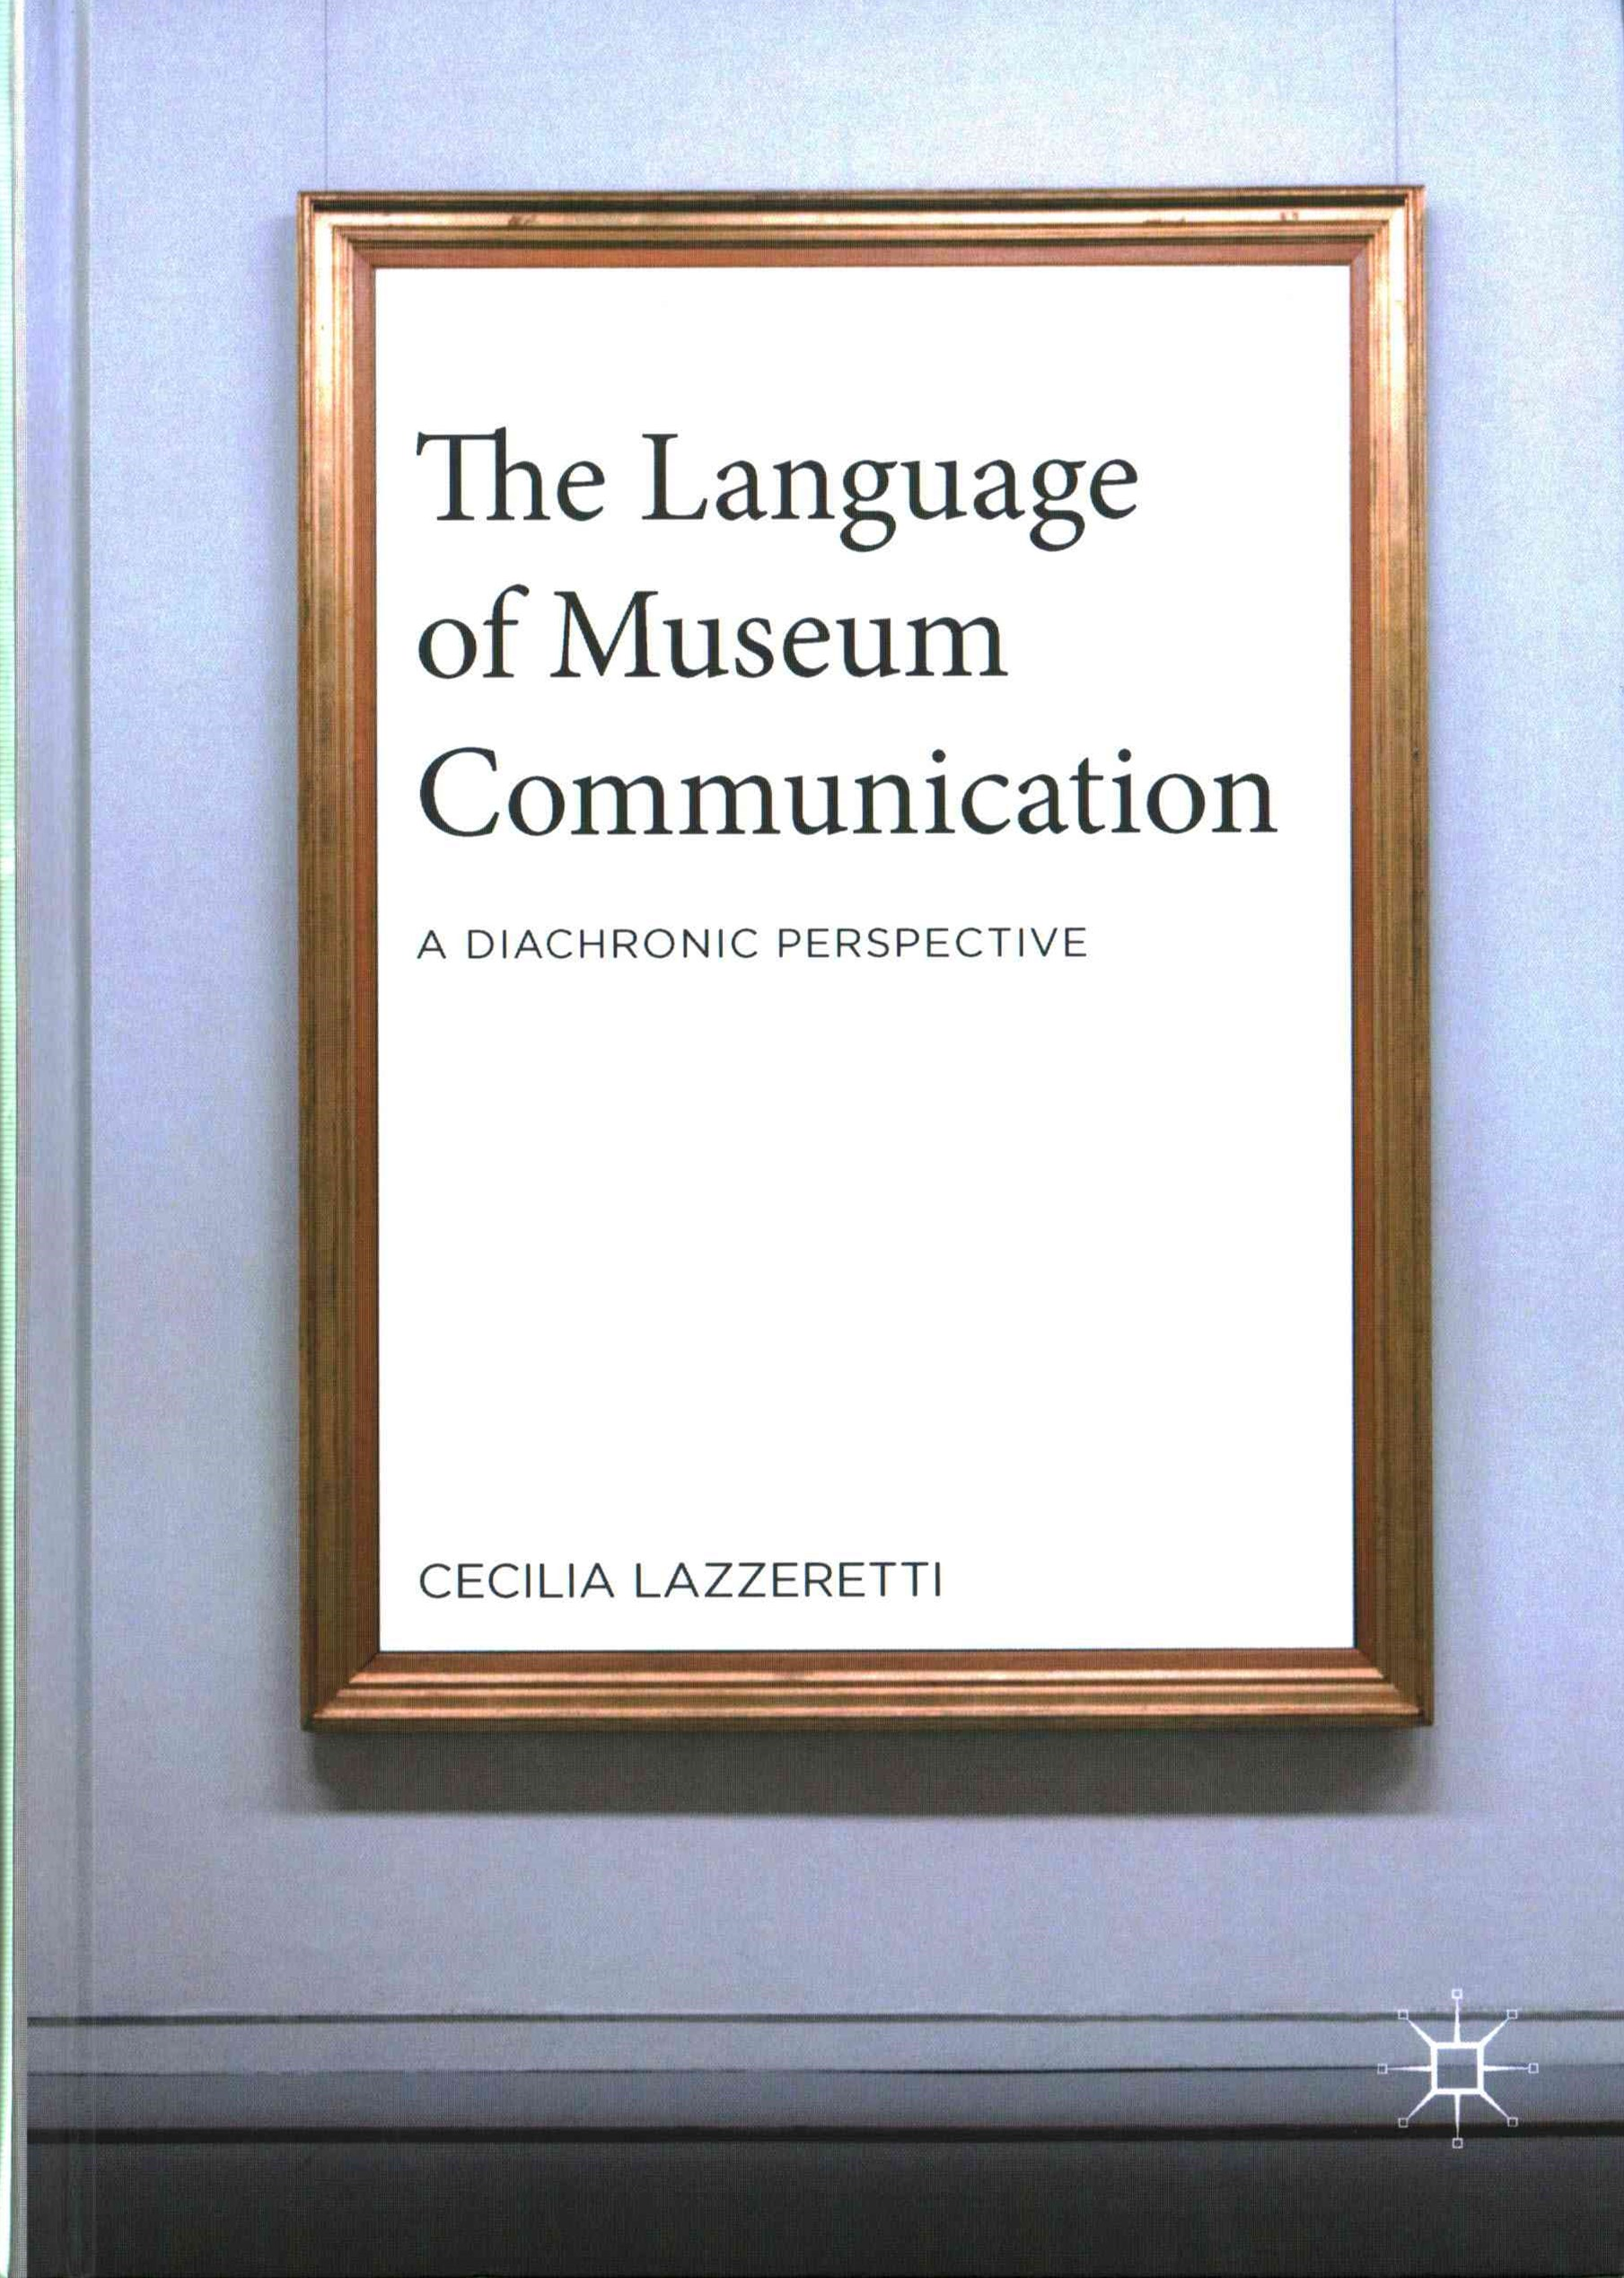 The Language of Museum Communication